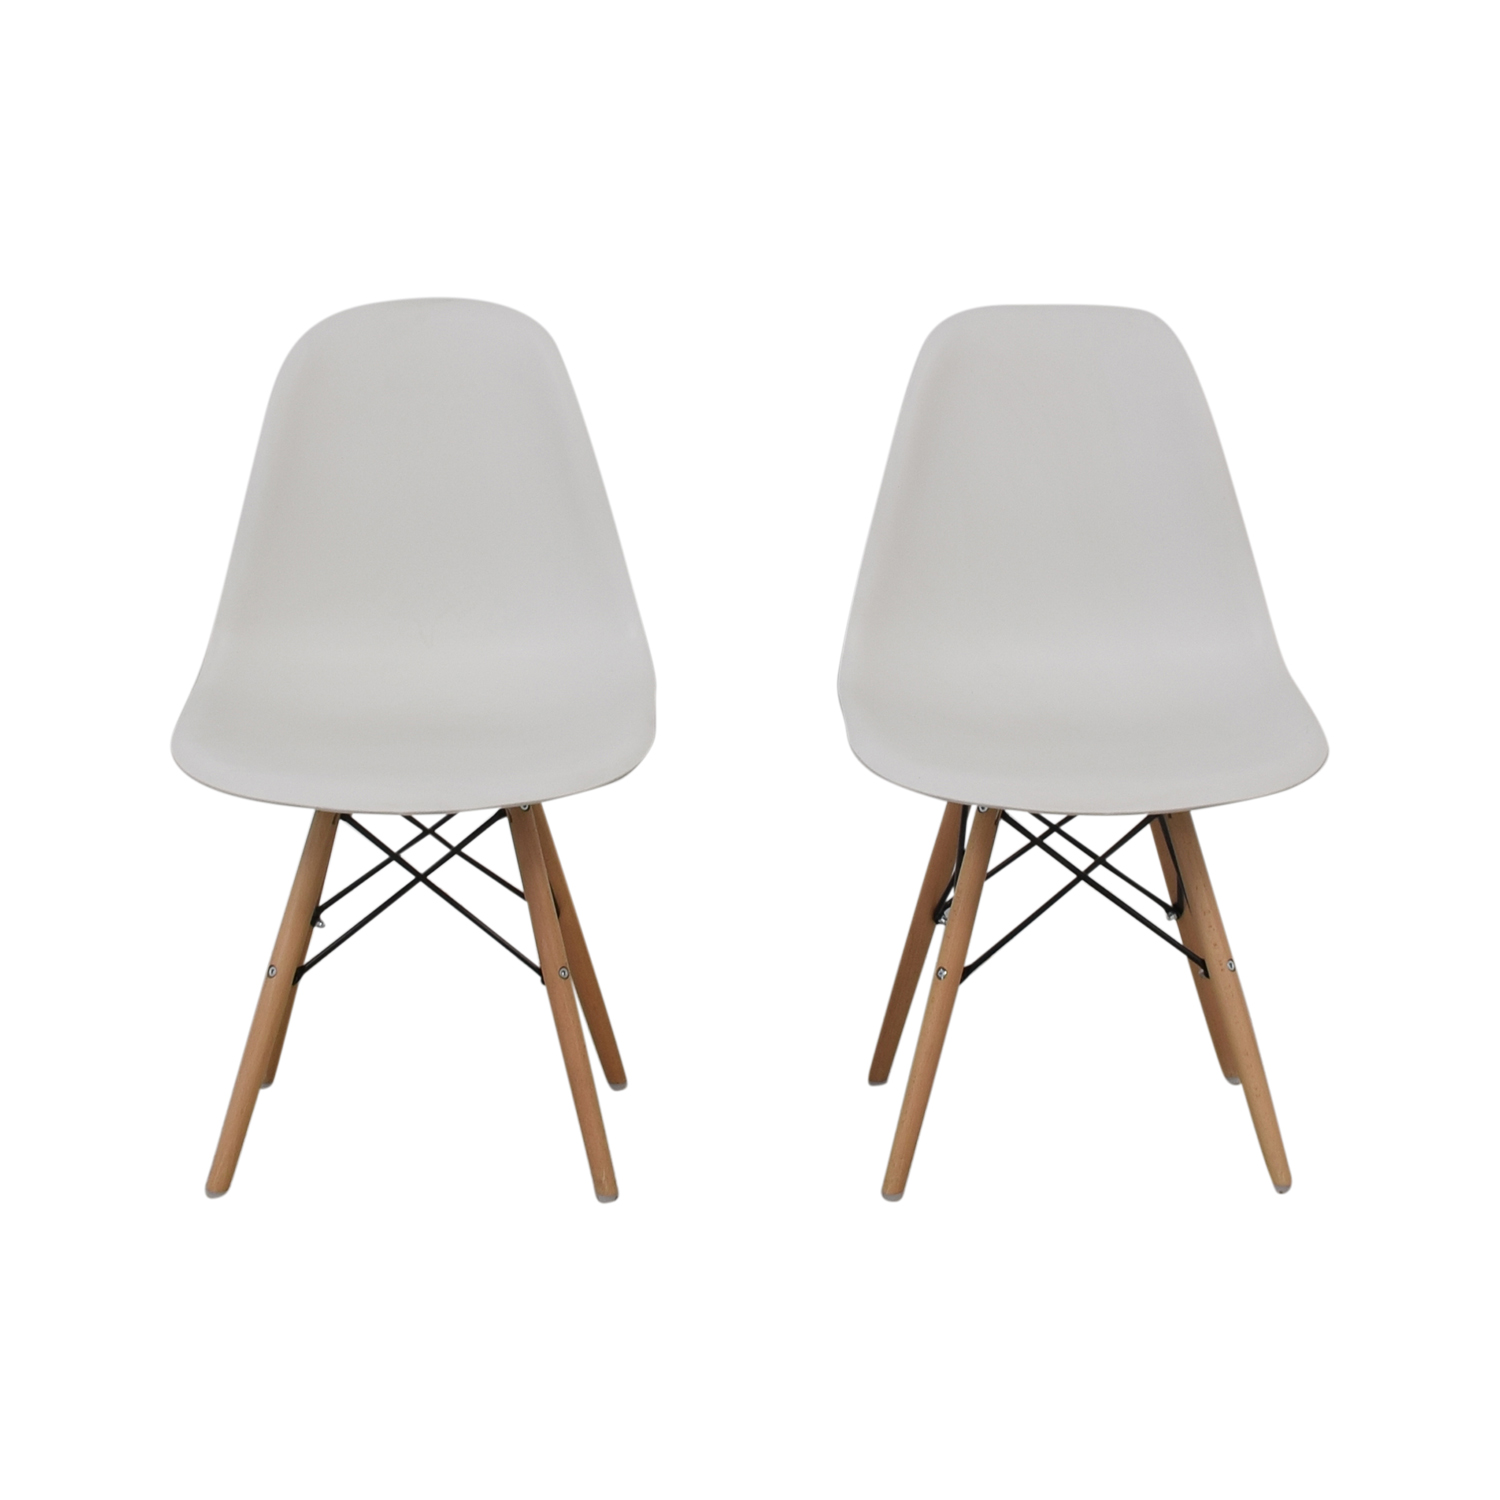 buy Wayfair Wayfair Eames Replica White Dining Chairs online